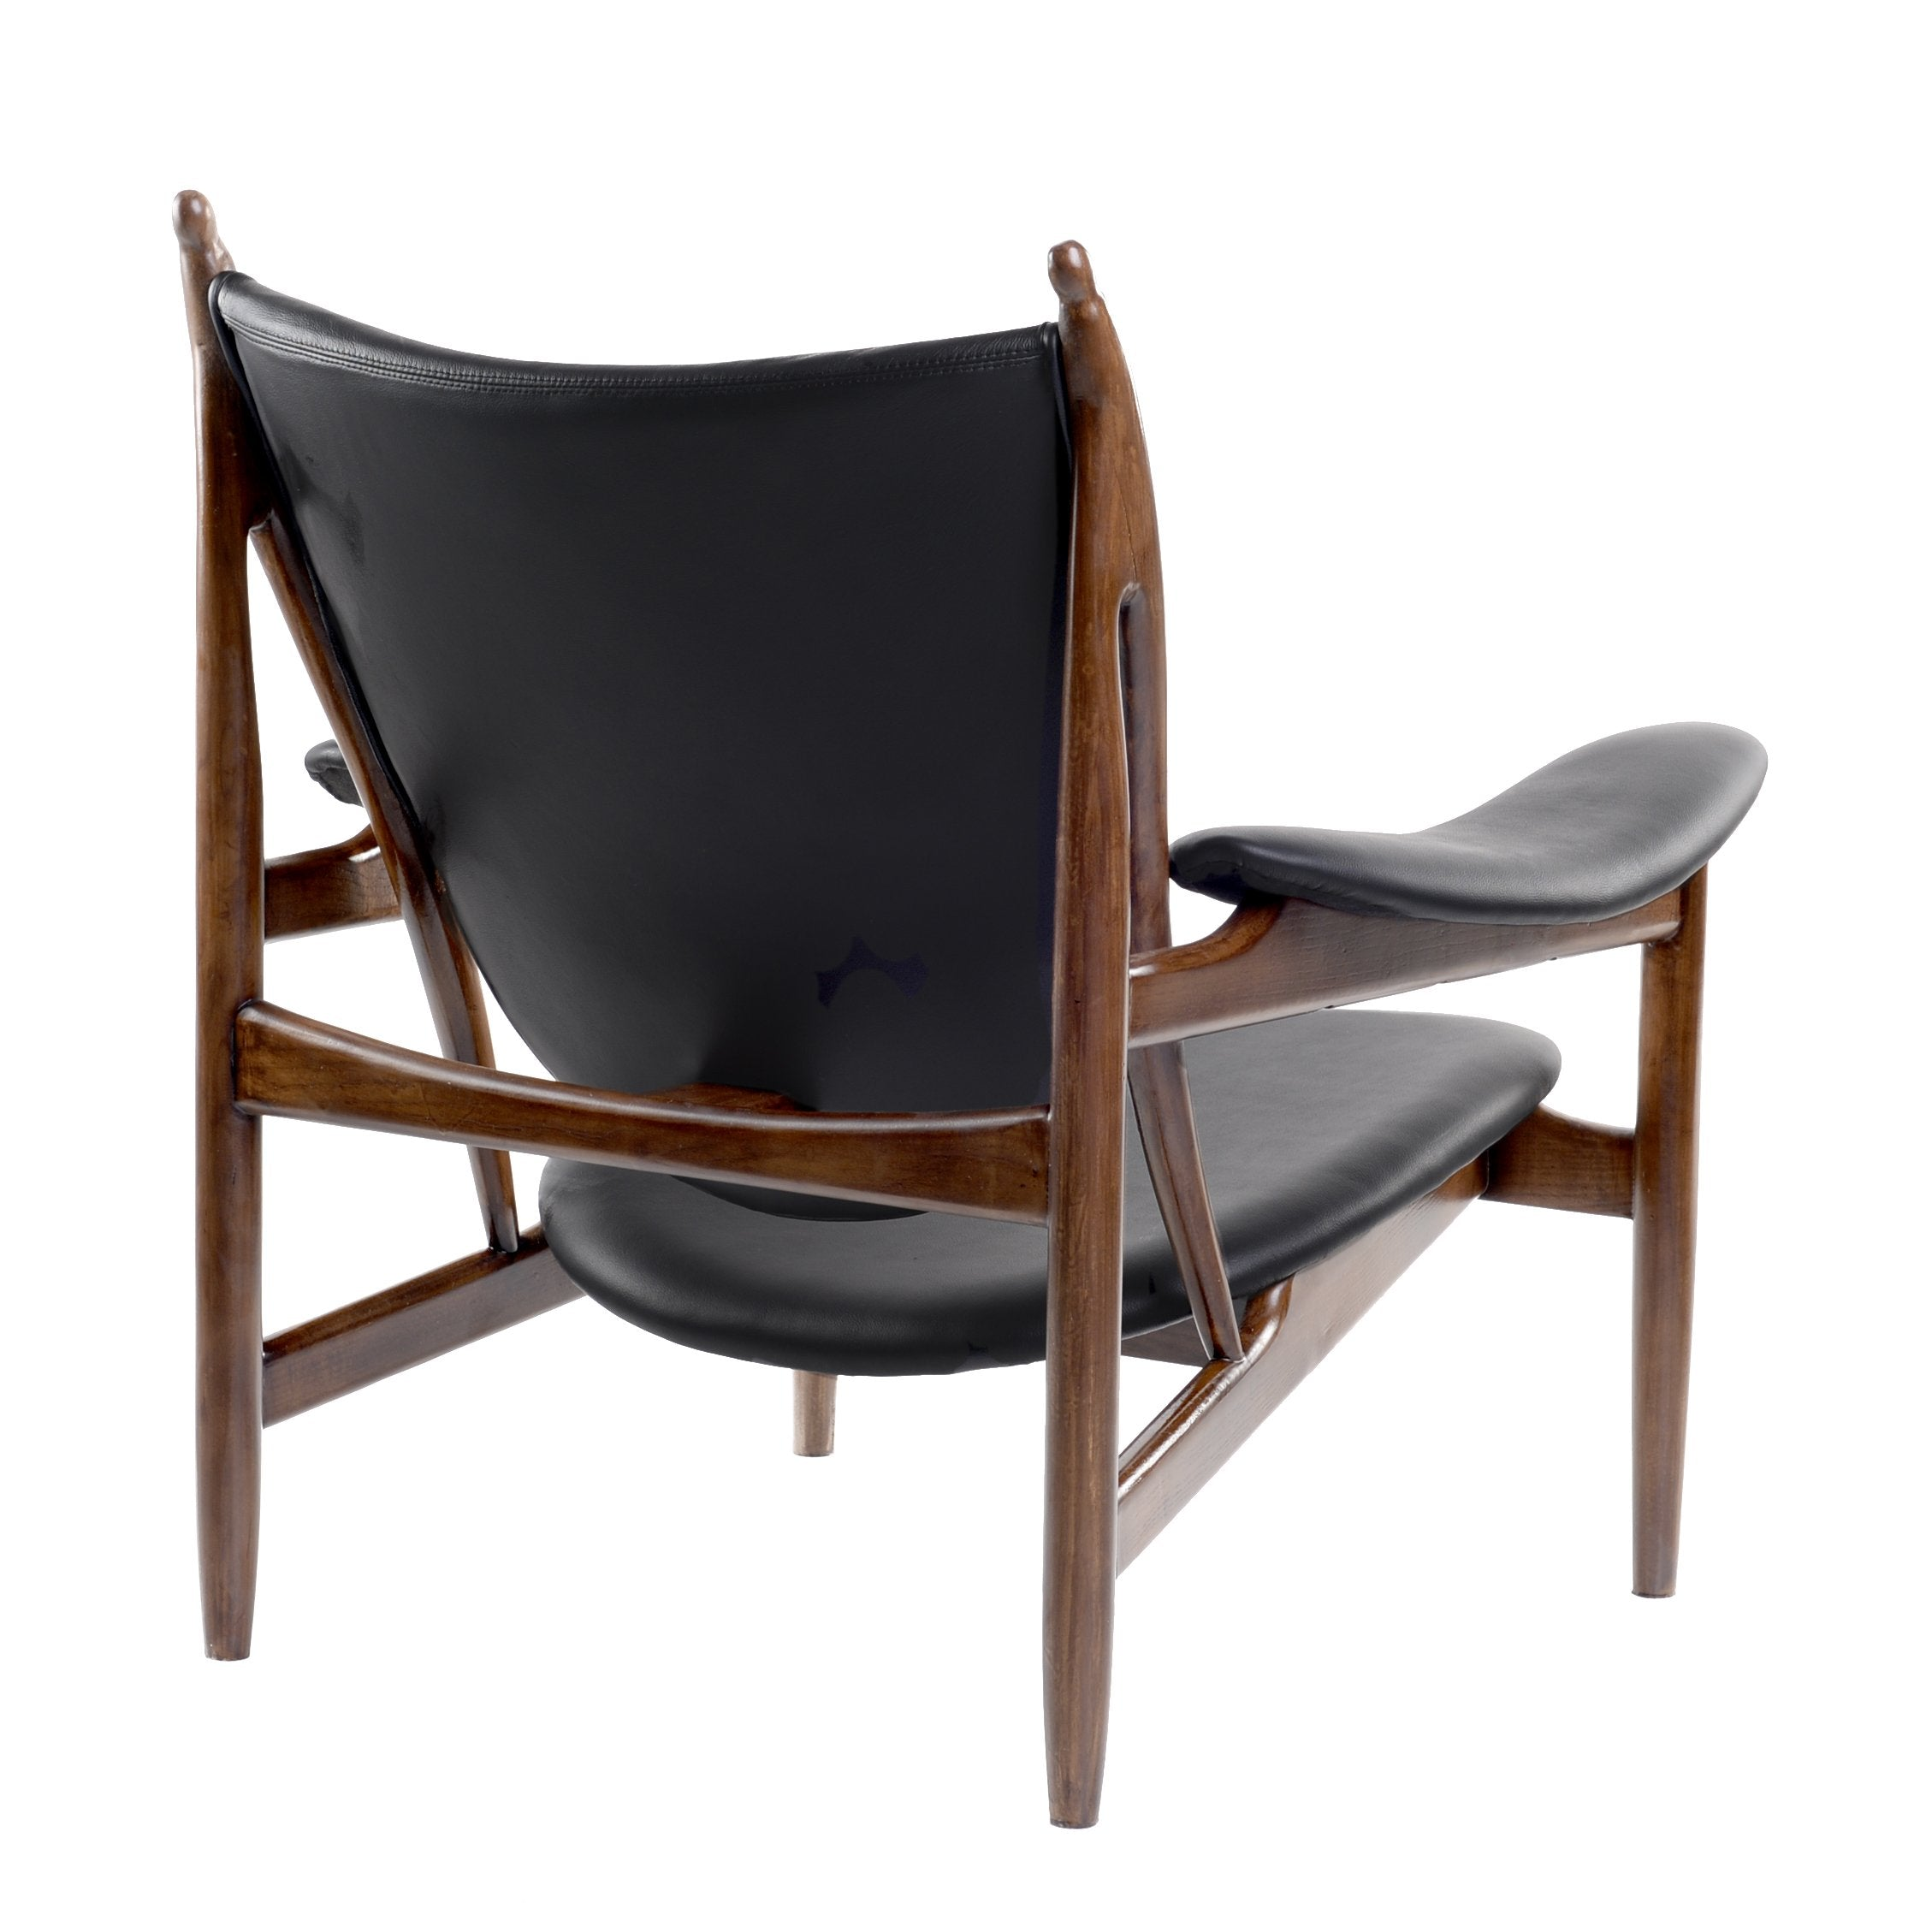 Arne Chair in Jet Black Leather on Mid Century Wood Frame